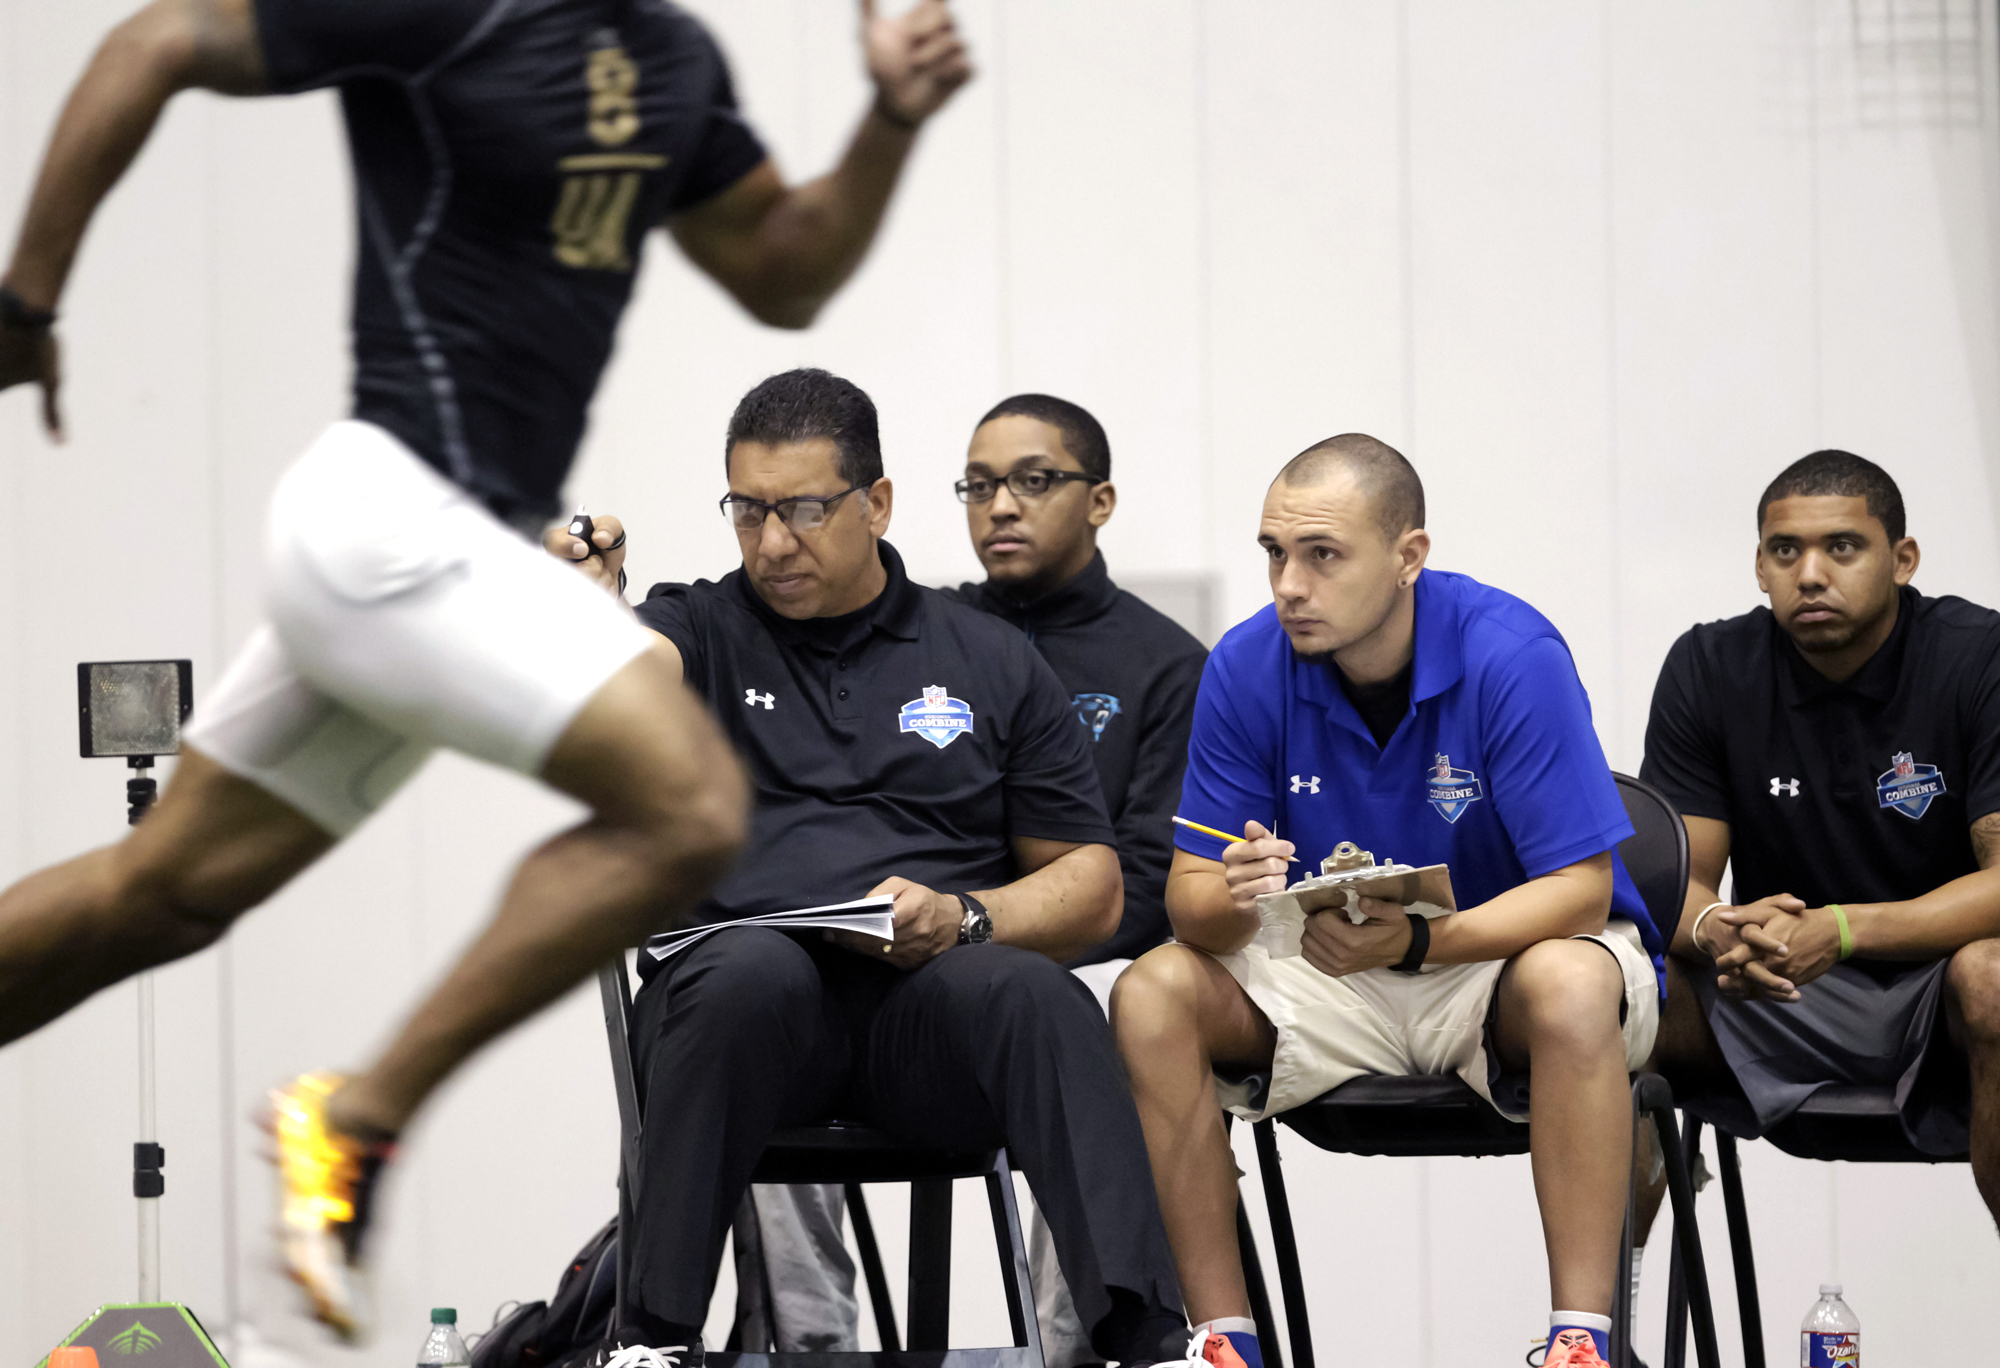 Junior Tagaloa, national director for the NFL Regional Combines, second from left, times McNeese State cornerback Gabriel Hamner in the 40-yard dash during the NFL football regional combine at the New Orleans Saints training facility in Metairie, La., Sunday, March 13, 2016.